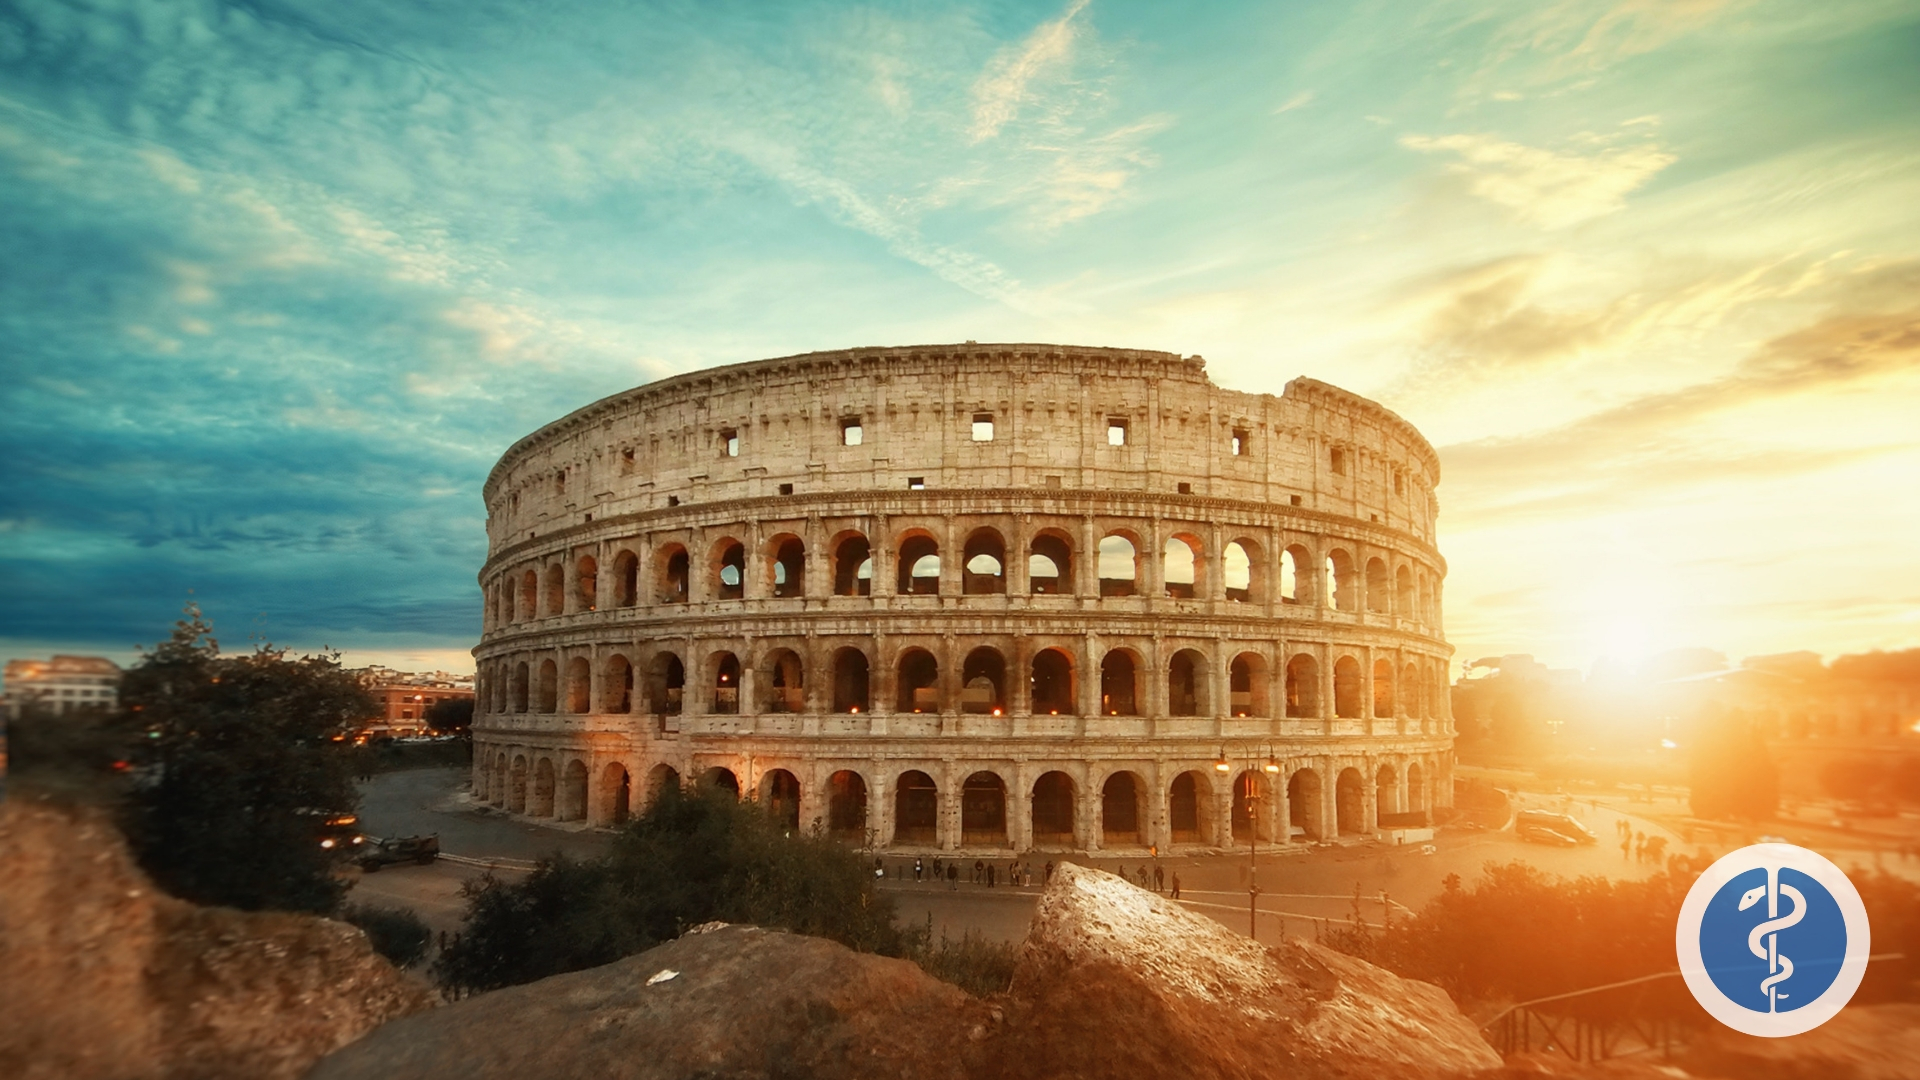 Image to show ways to find an English speaking doctor in Rome